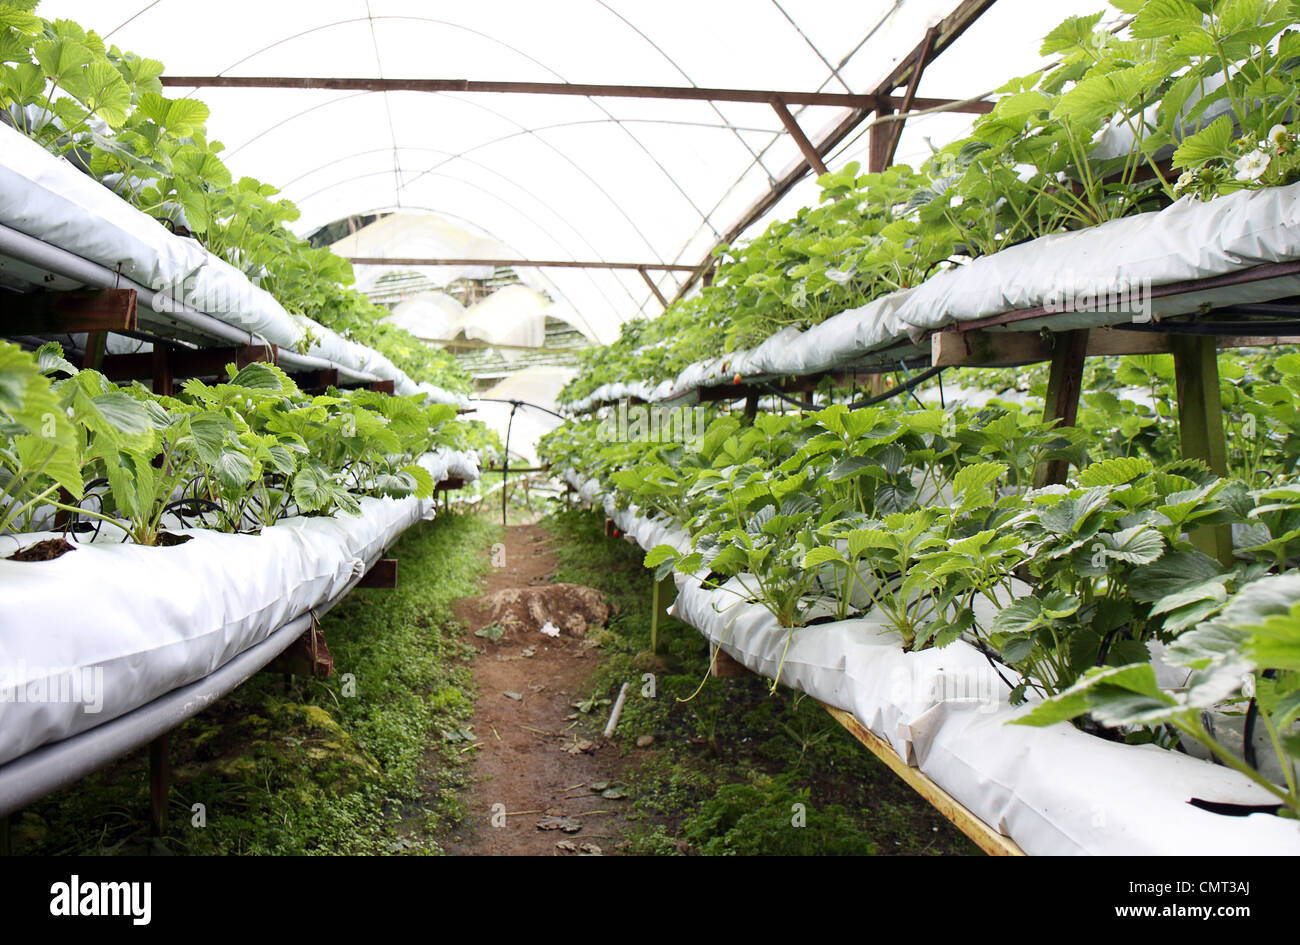 Rows and stacks of strawberry plants in a greenhouse at the strawberry farm. - Stock Image